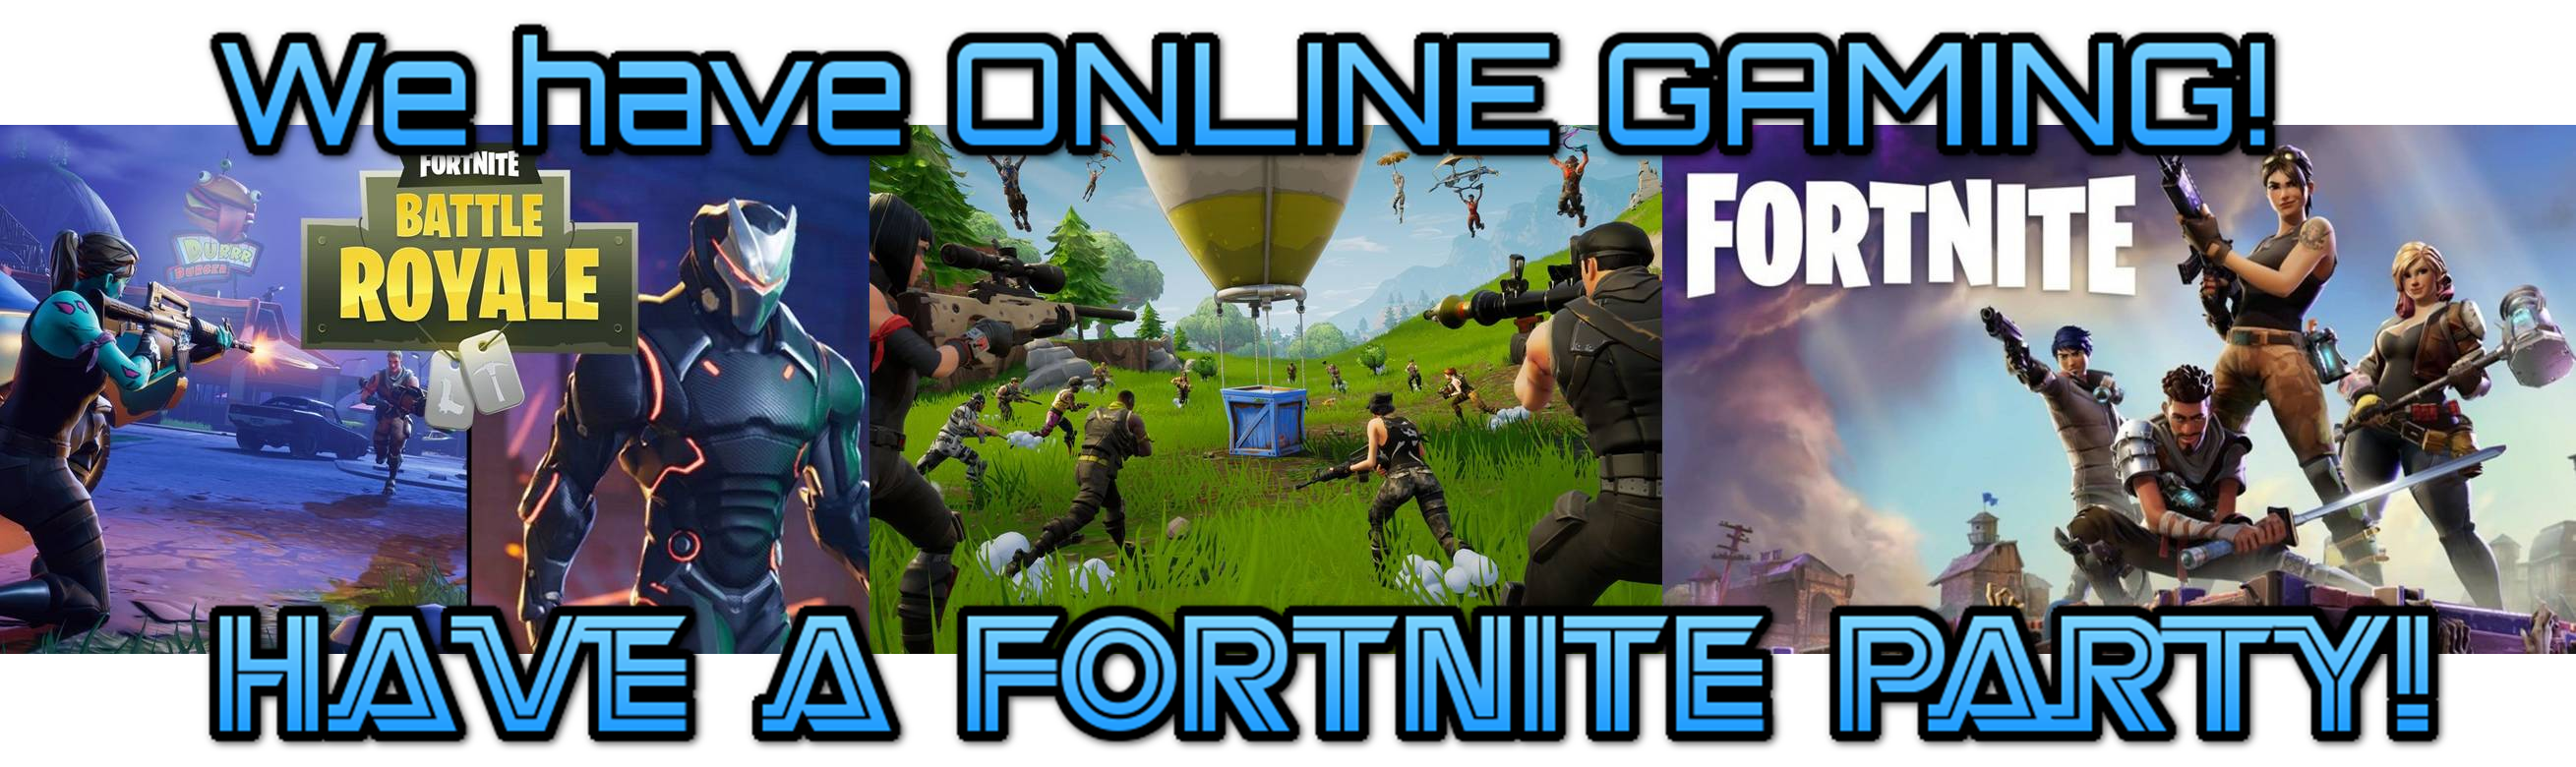 Fortnite video game birthday party in Maryland, Washington DC and Virginia